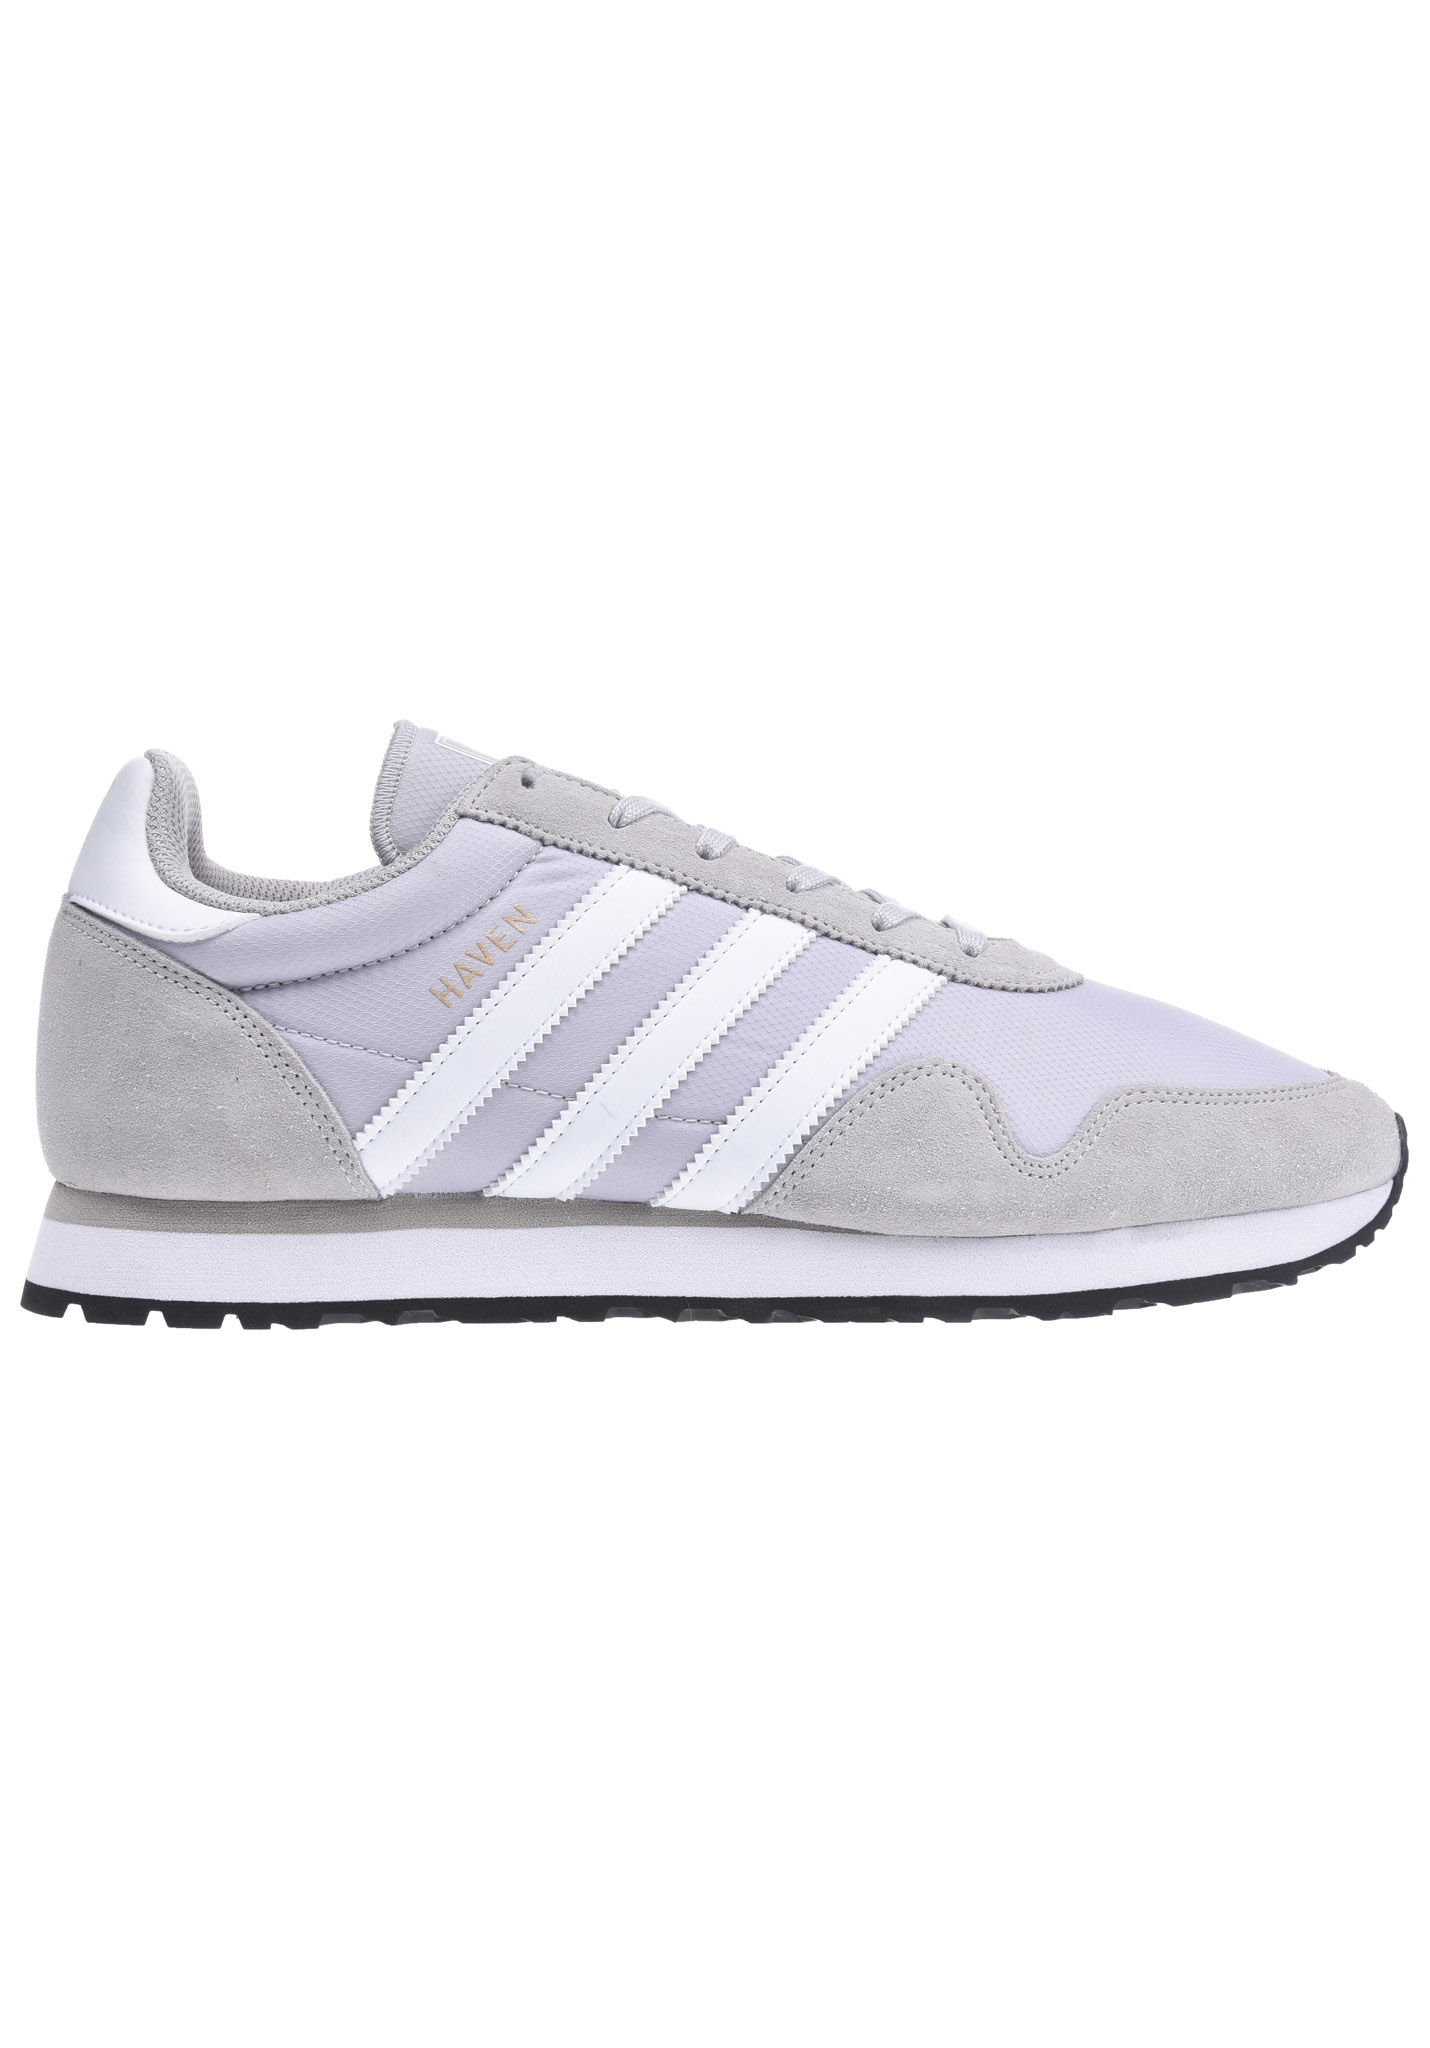 Gris Adidas Chaussures De Sport Adidas Hommes Harbour YGmJidlQs